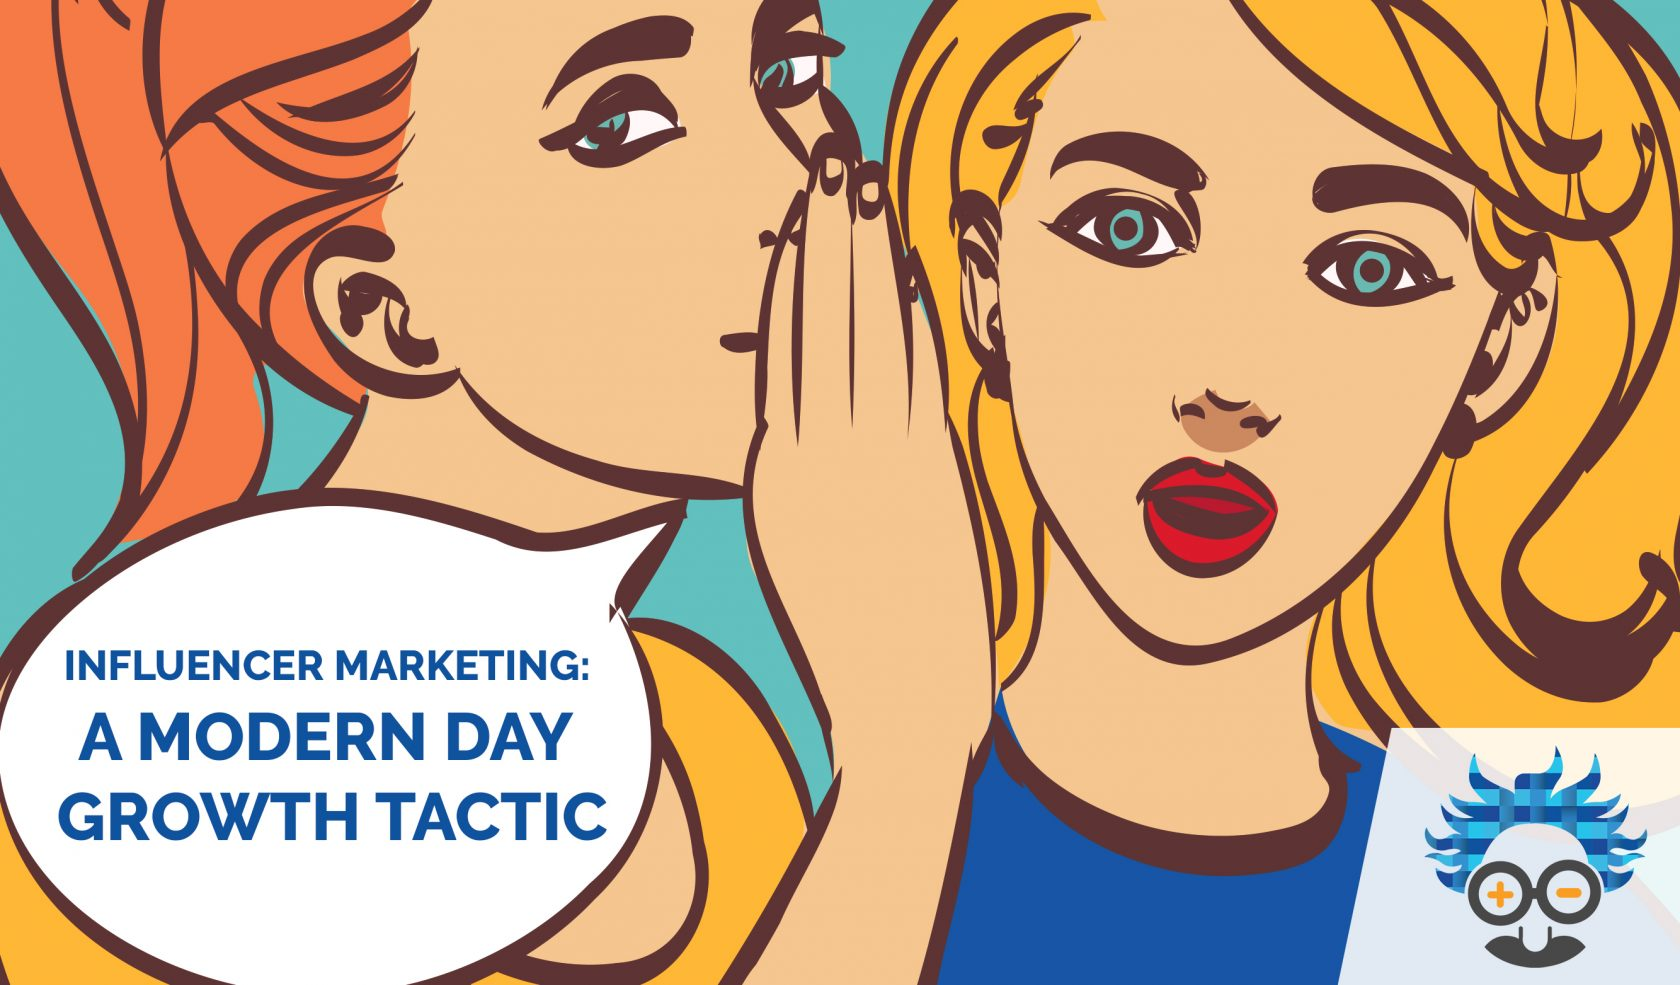 influencer marketing growth tactic